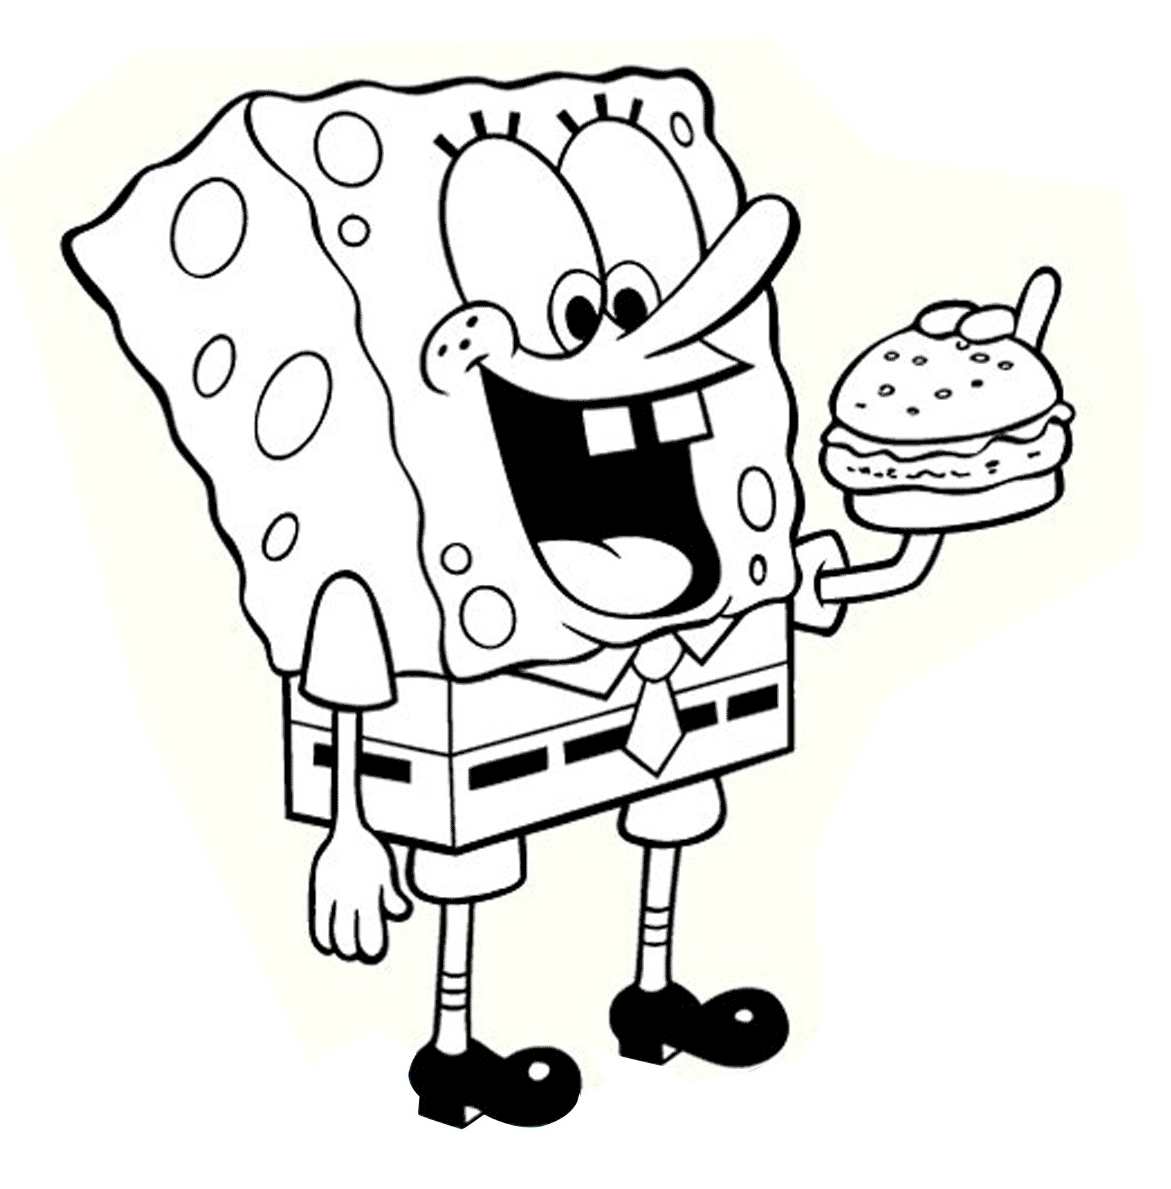 spongebob fun coloring pages - photo#26